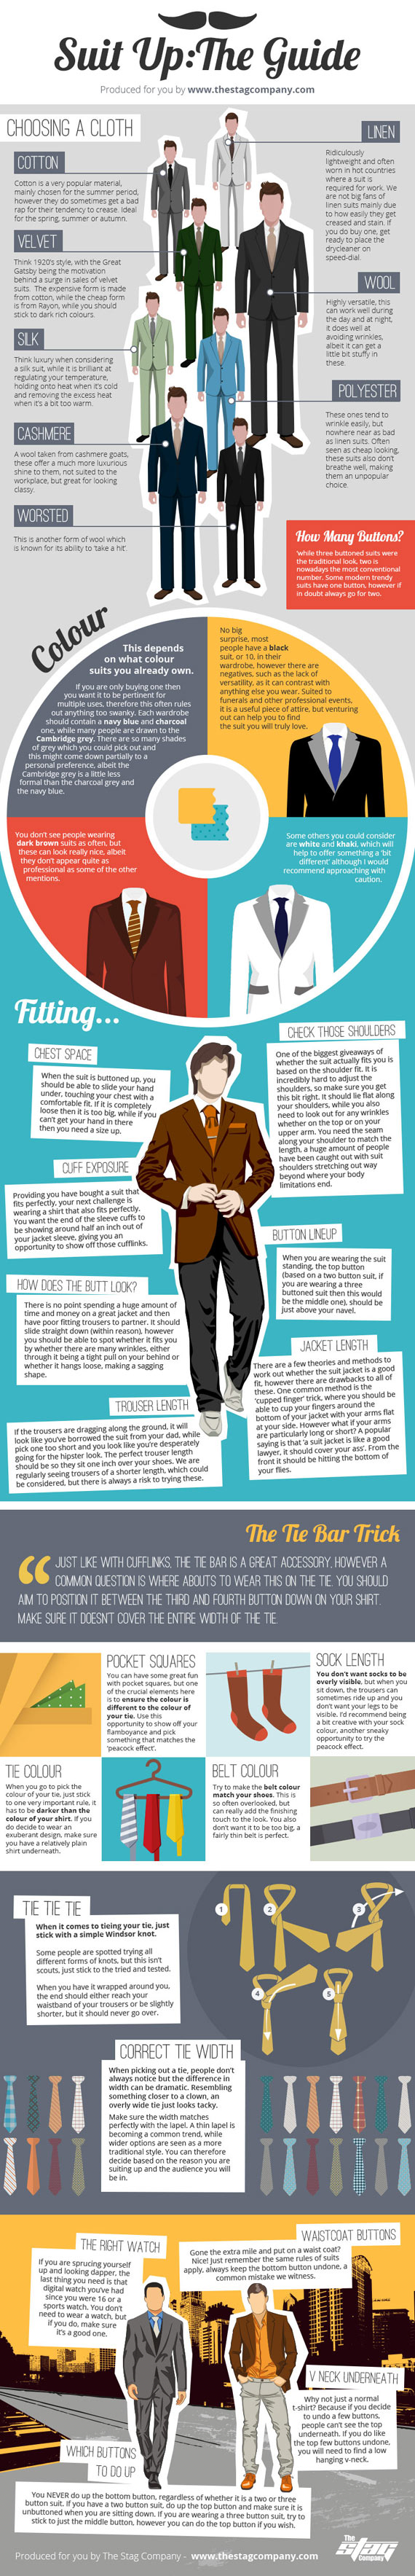 suit guide for men